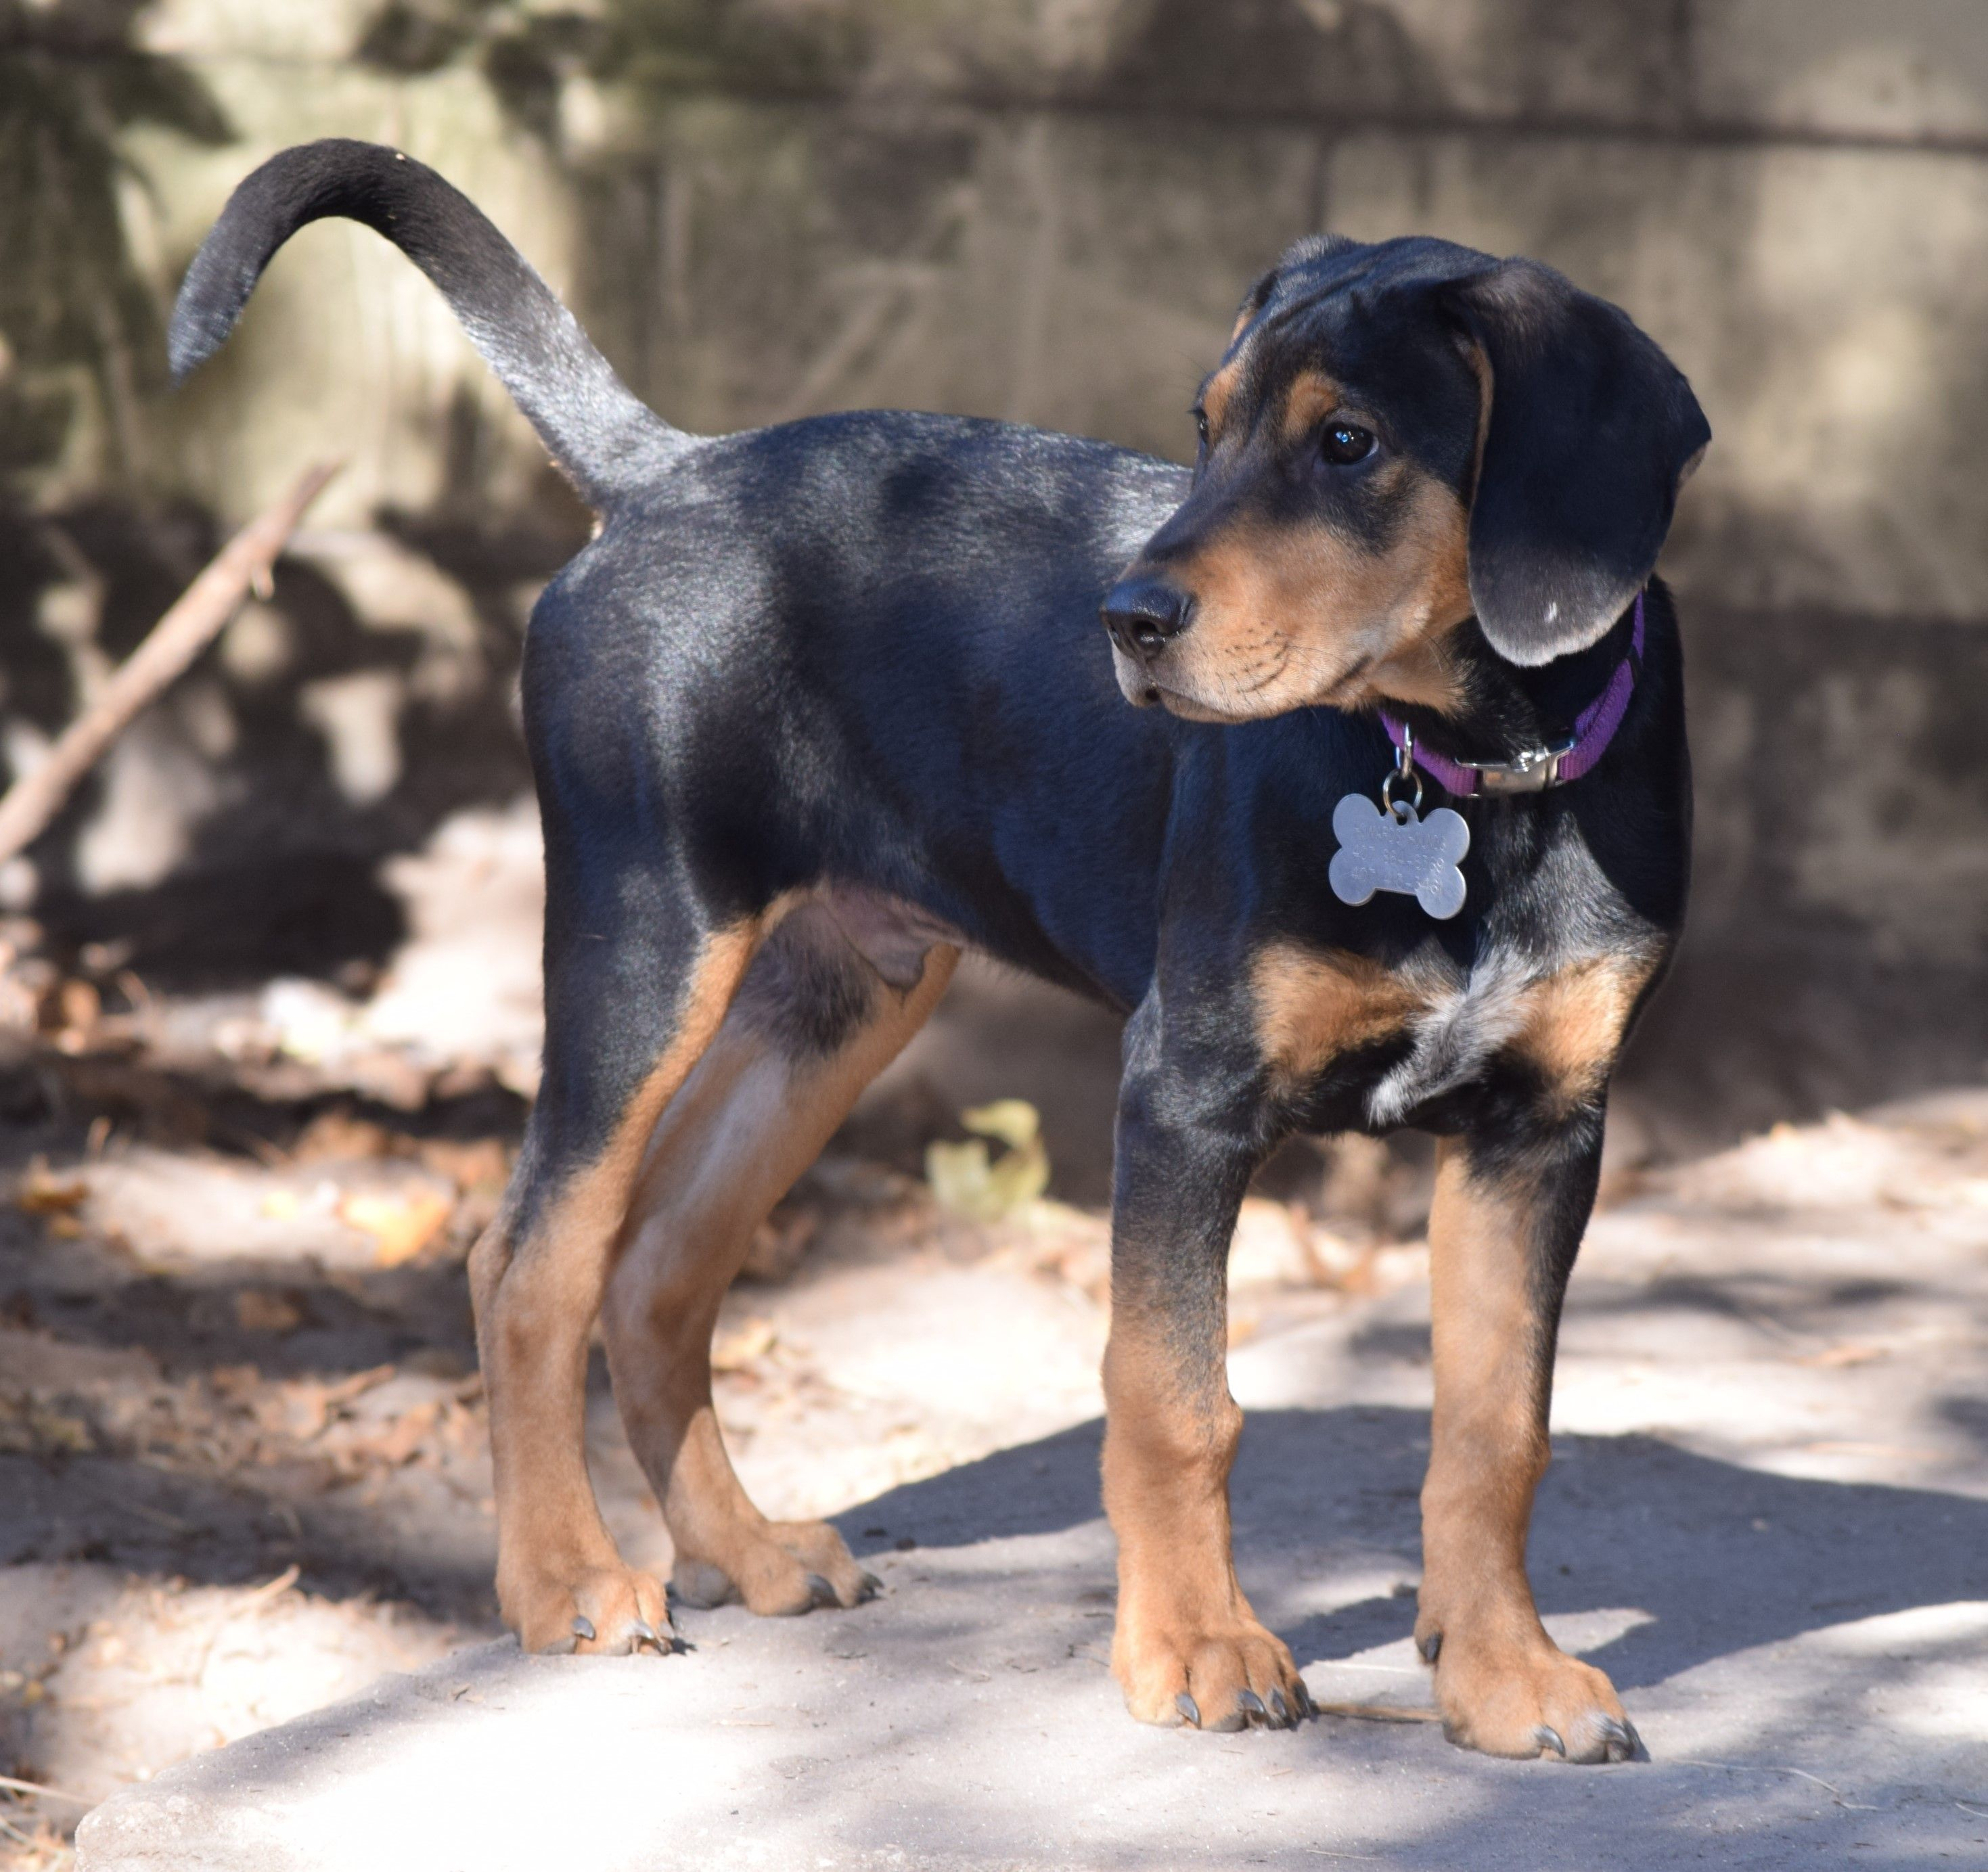 Black and Tan Coonhound dog for Adoption in Orlando, FL